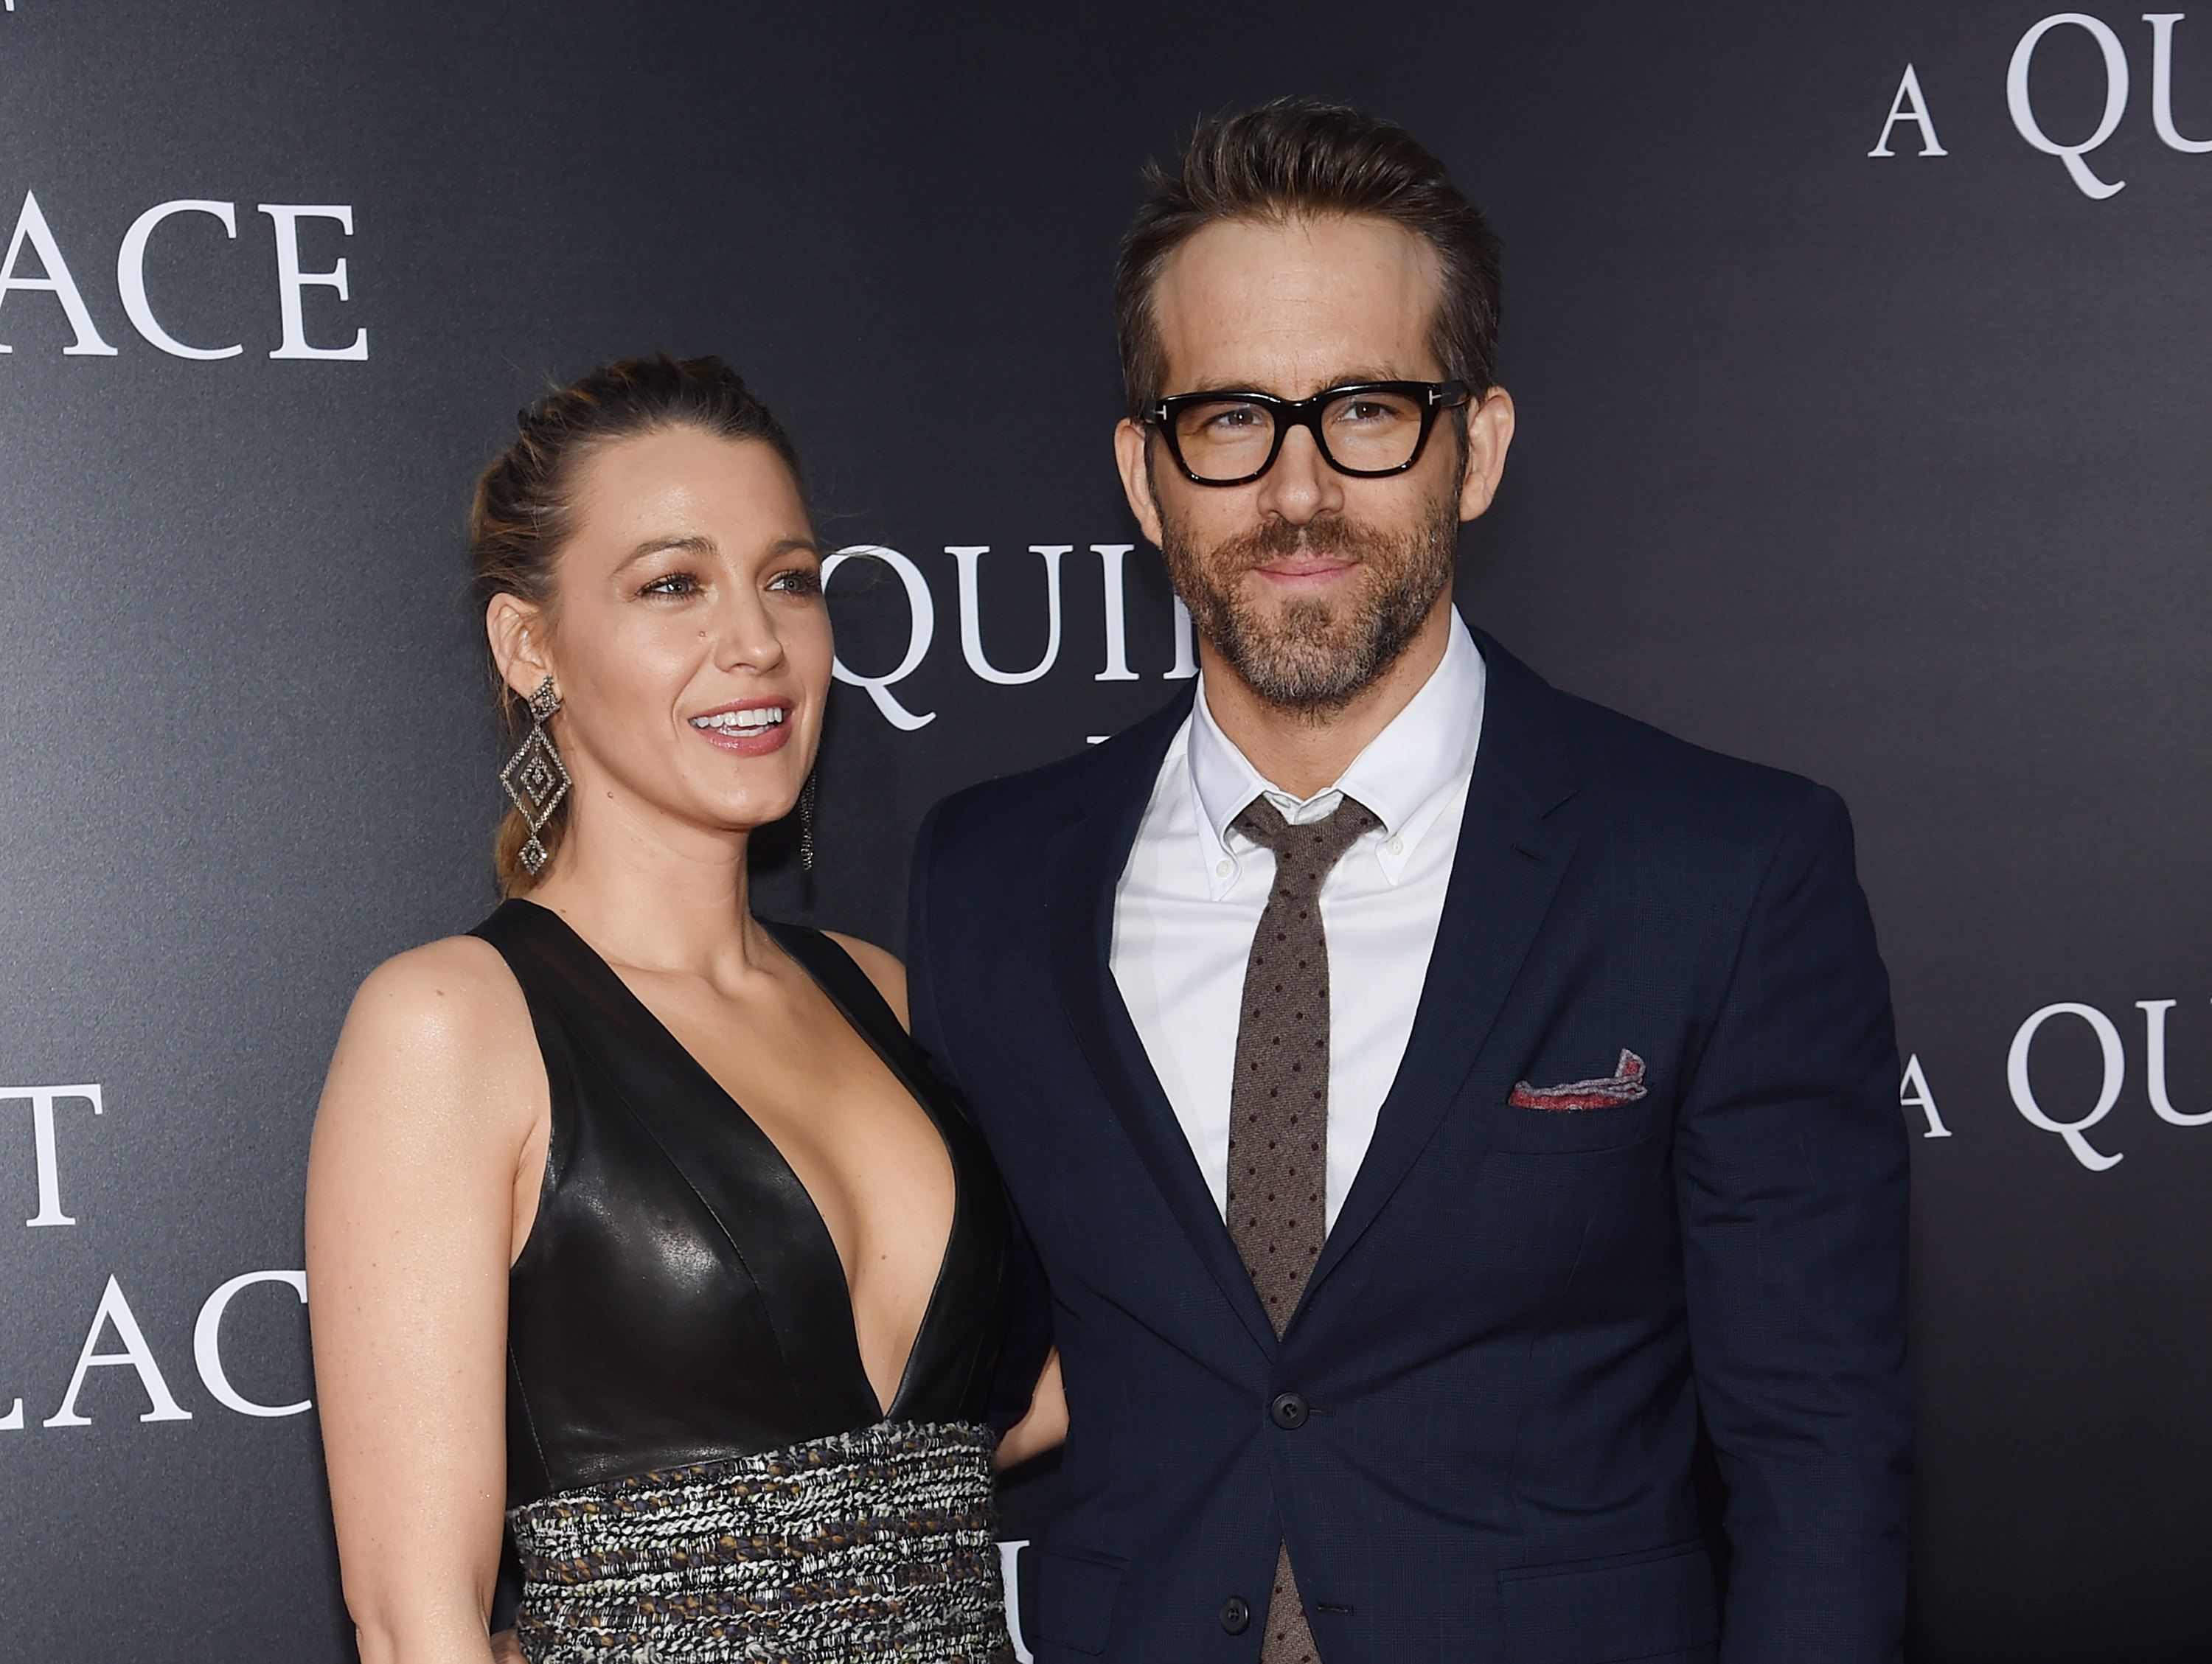 NEW YORK, NY - APRIL 02:  Blake Lively and Ryan Reynolds attend the premiere for  A Quiet Place  at AMC Lincoln Square Theater on April 2, 2018 in New York City.  (Photo by Jamie McCarthy/Getty Images)